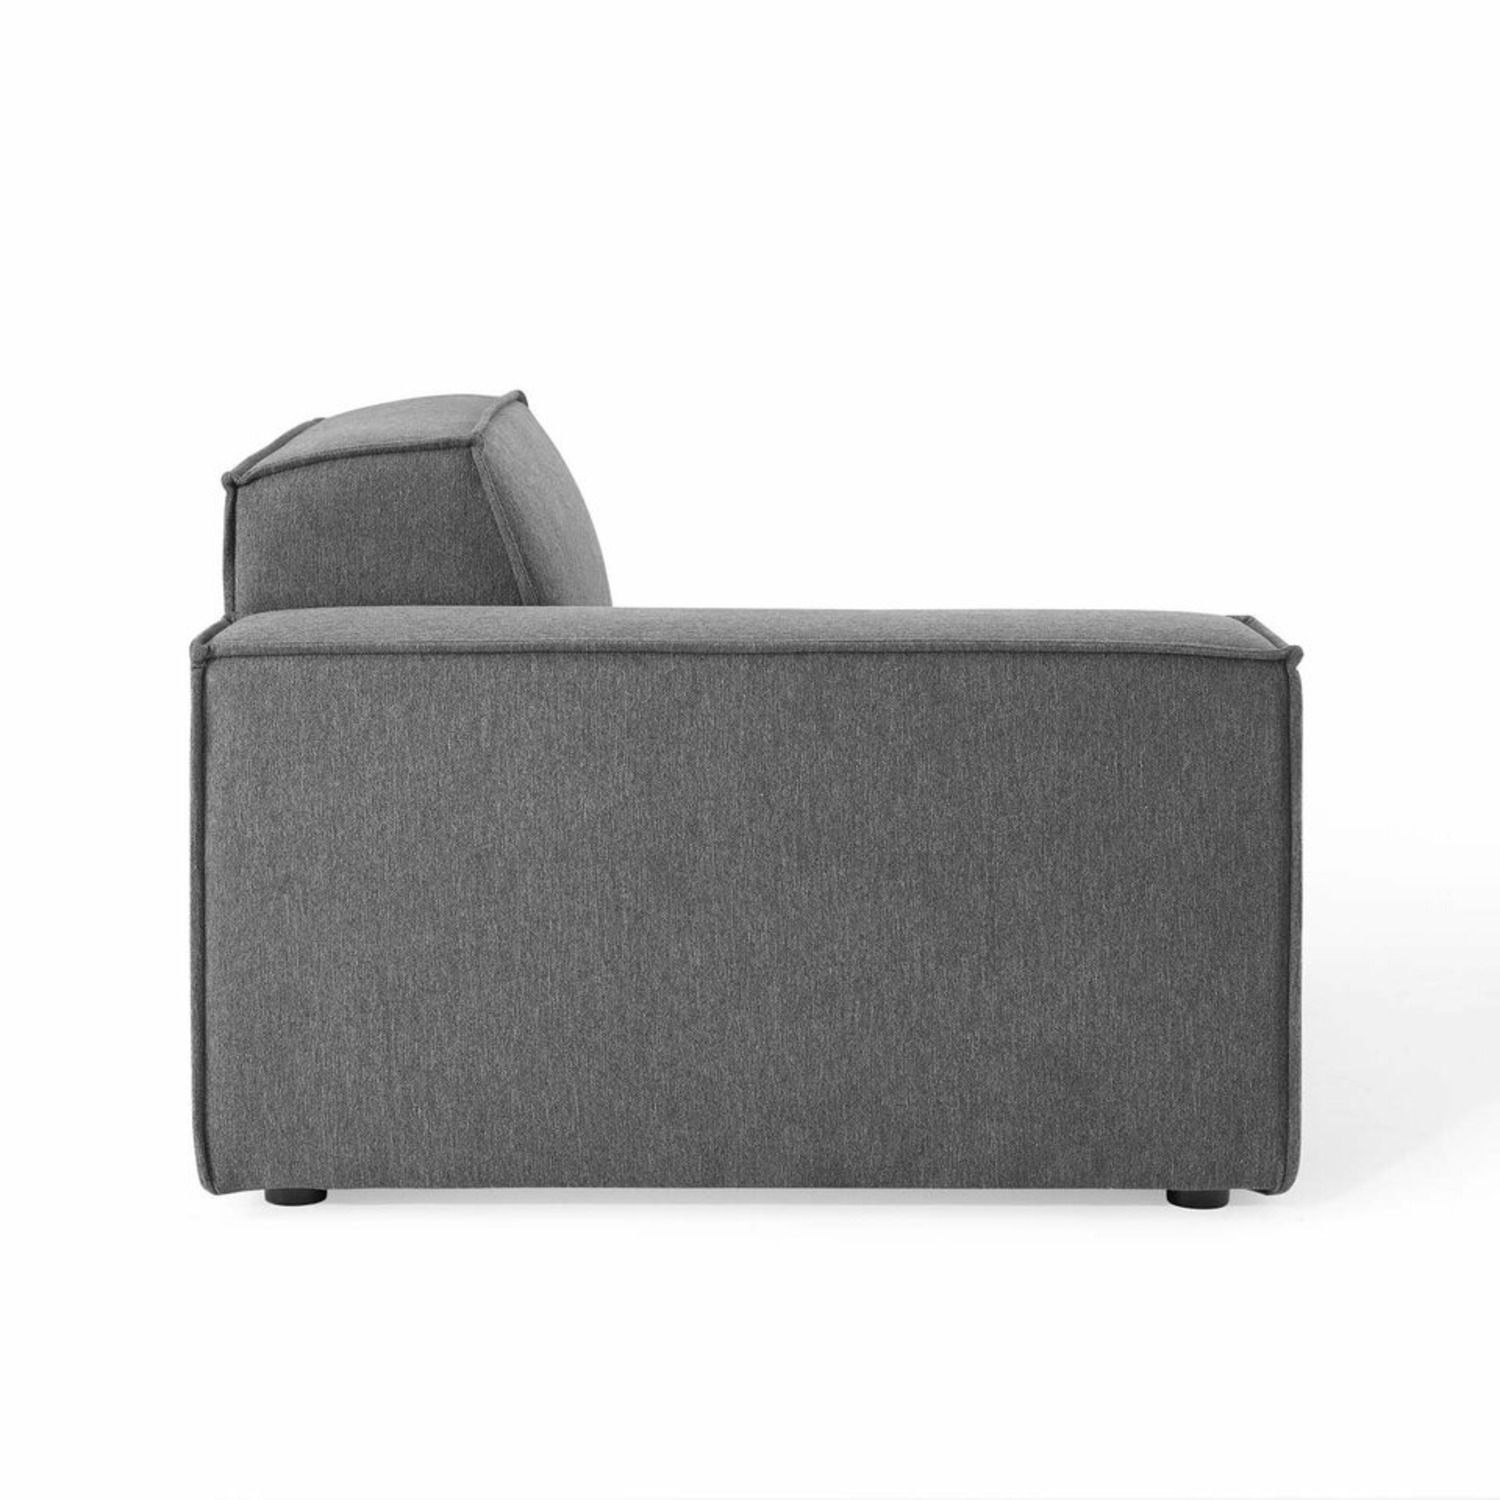 6-Piece Sectional Sofa In Charcoal Fabric - image-5